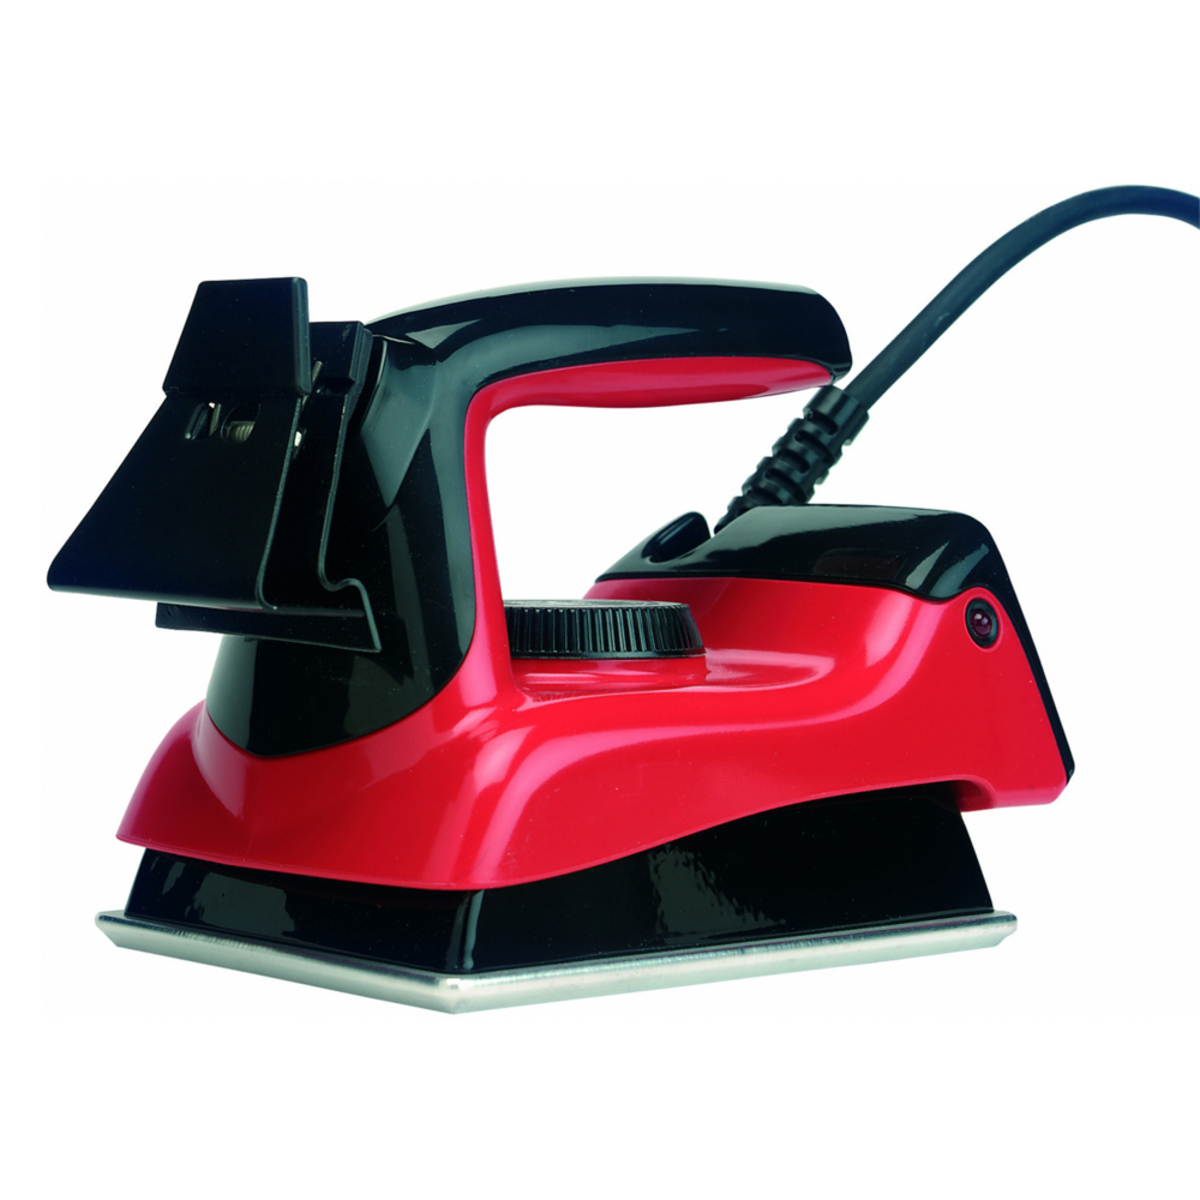 Swix T74 Waxing Iron